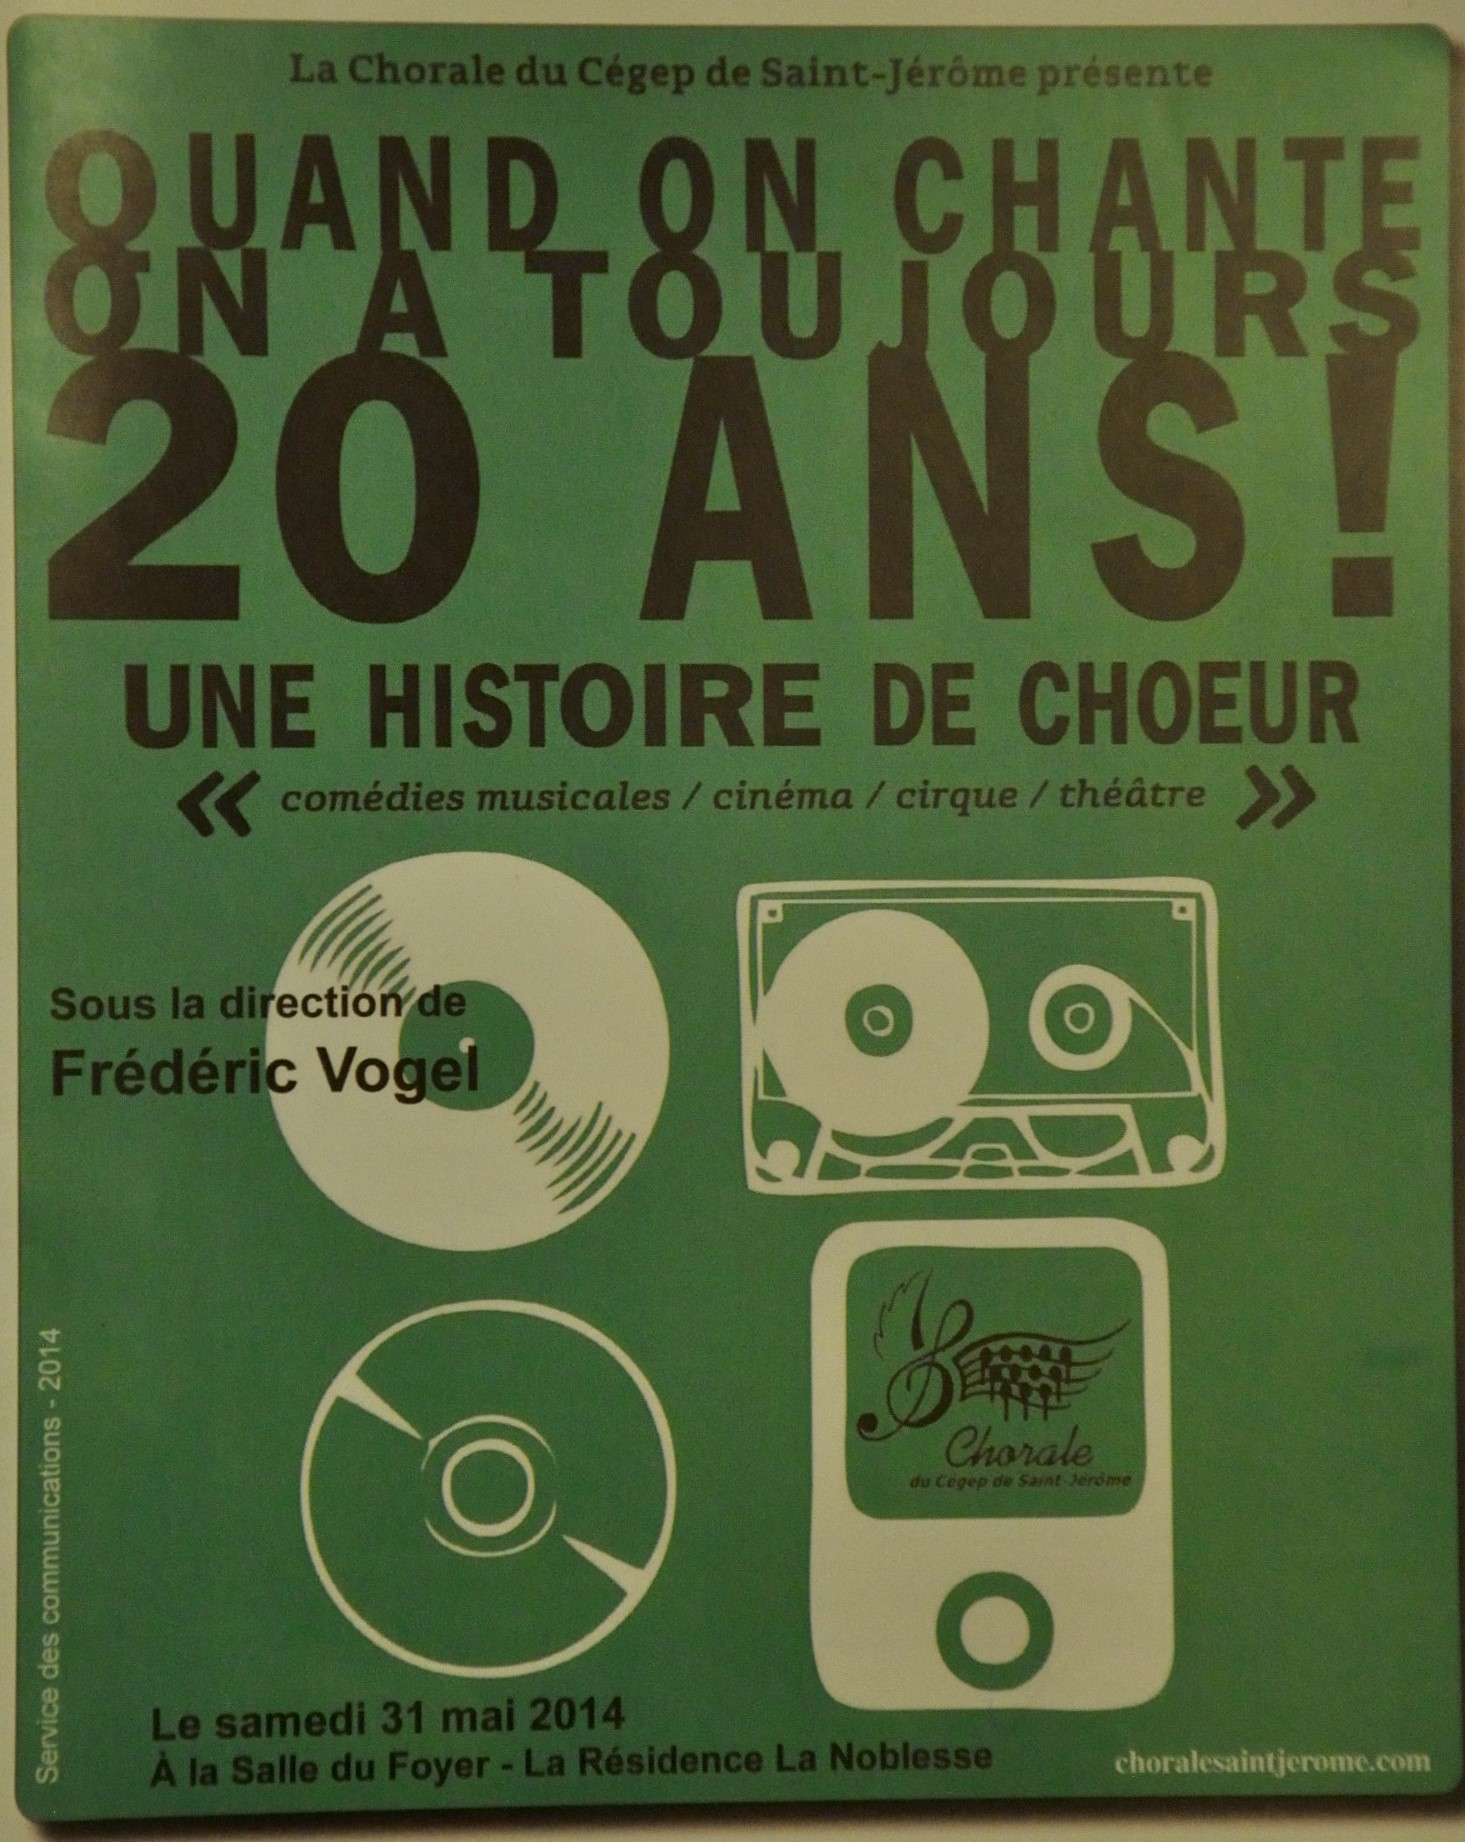 2014-31 mai Quand on chante on a toujours 20 ans